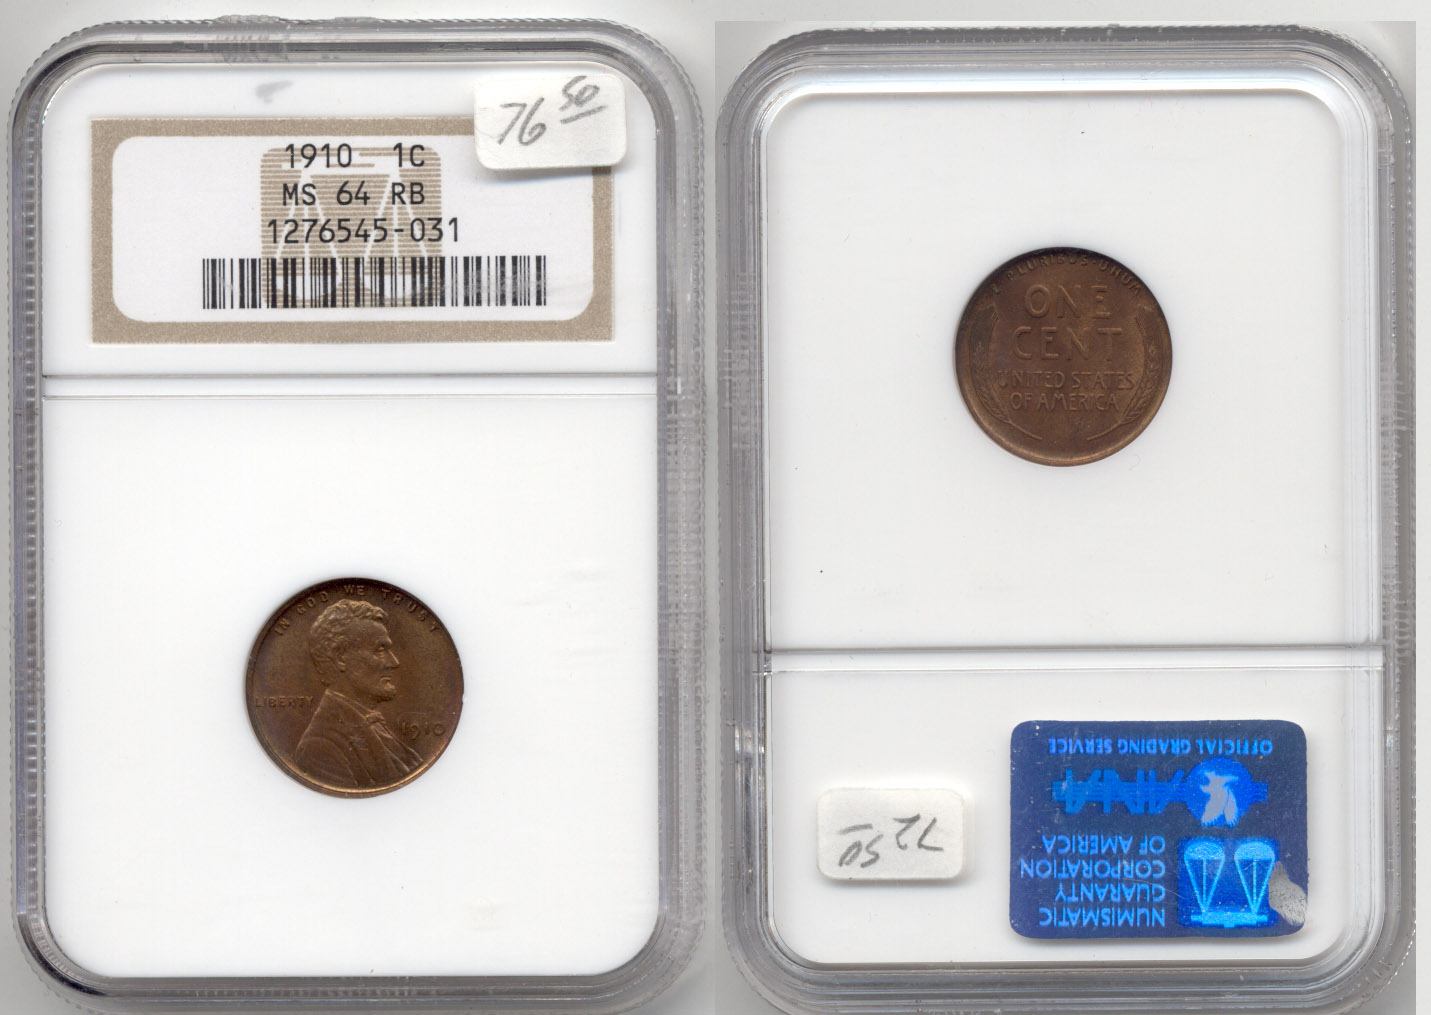 1910 Lincoln Cent NGC MS-64 Red Brown